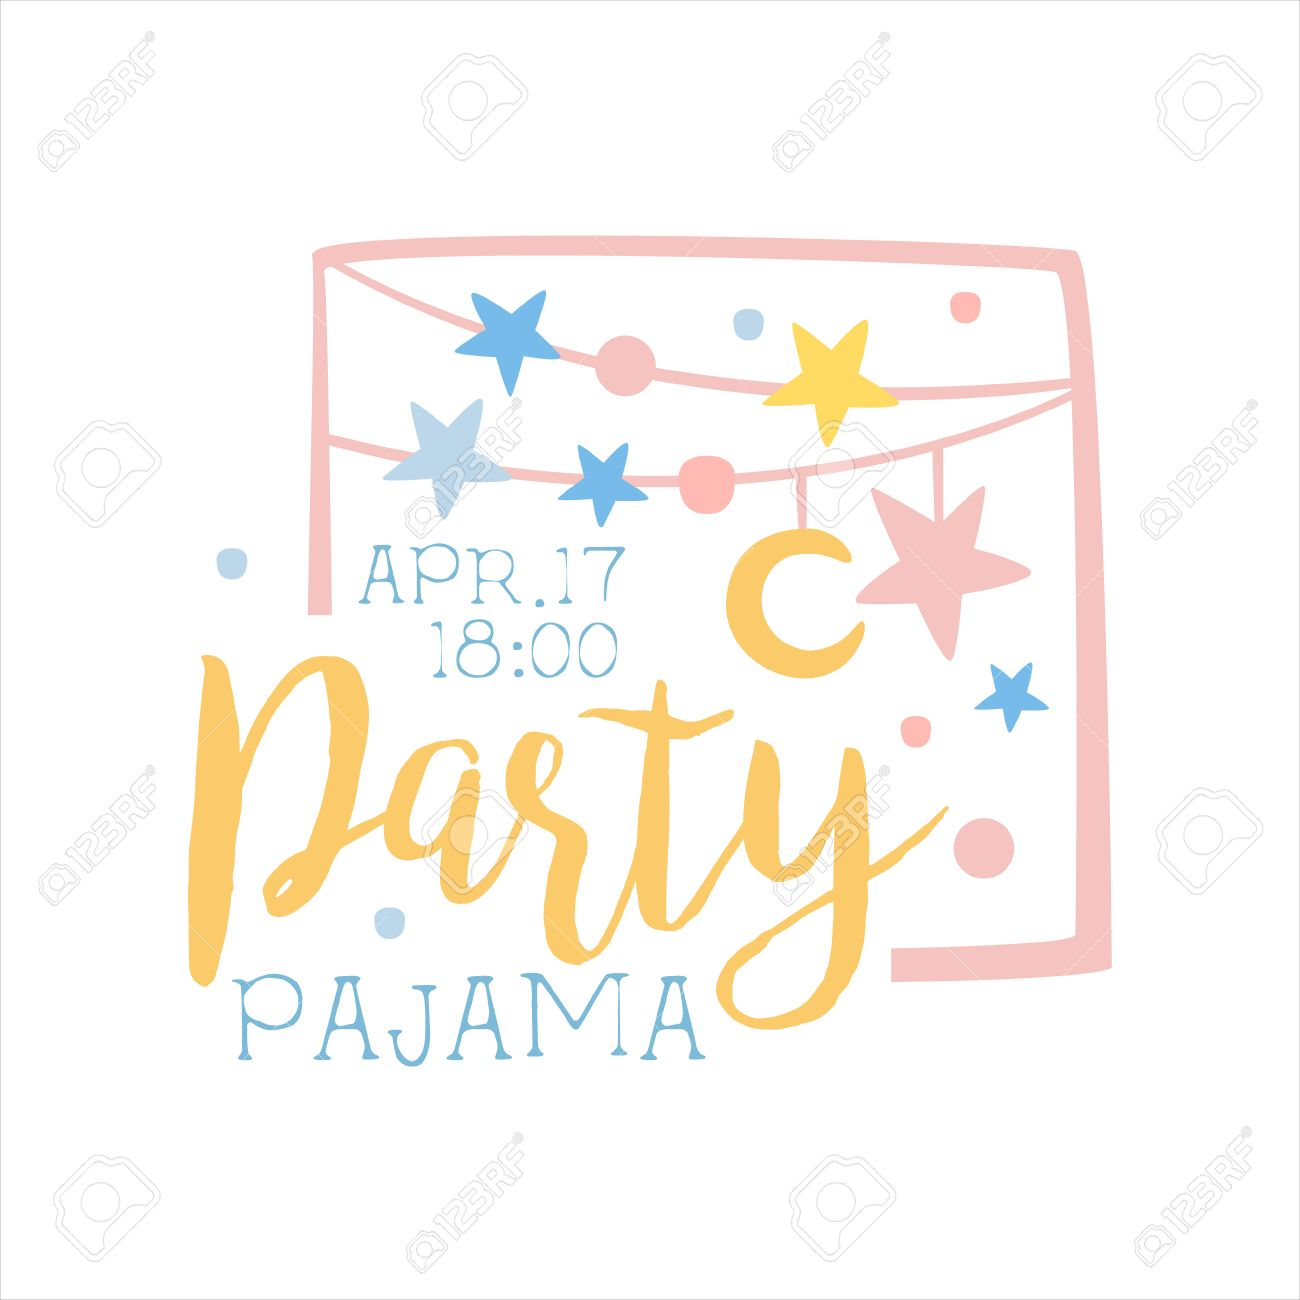 Girly Pajama Party Invitation Card Template With Garlands Inviting ...